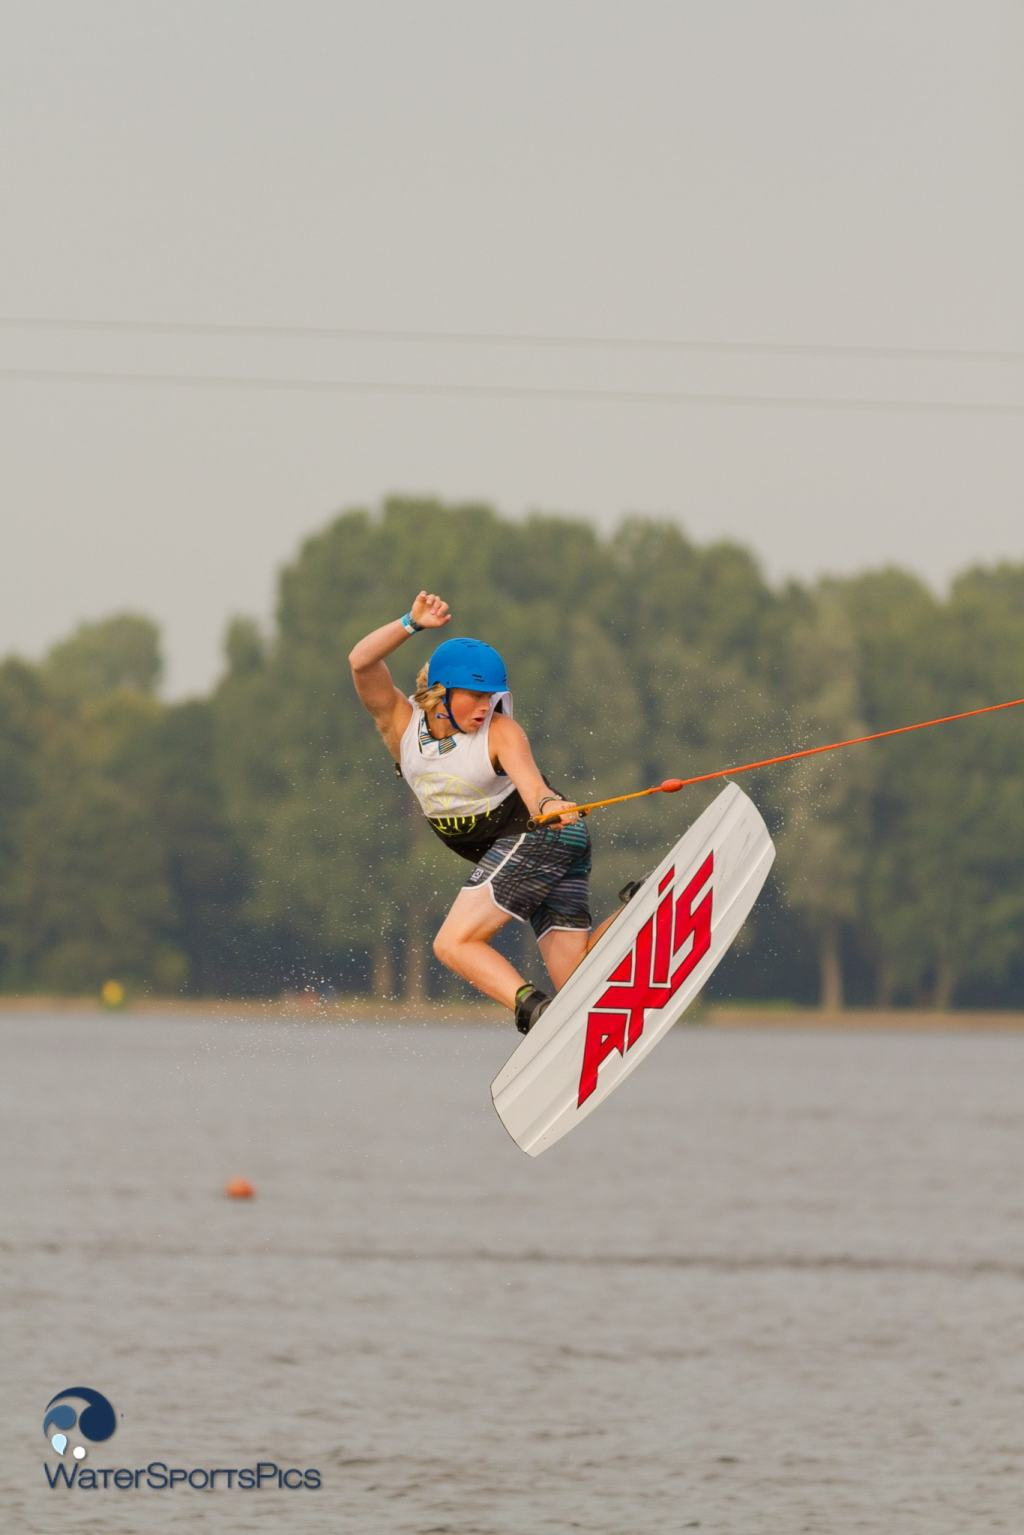 Wakeboarding at Wet 'n Wild, Alphen aan de Rijn, The Netherlands on 27 July  2014.